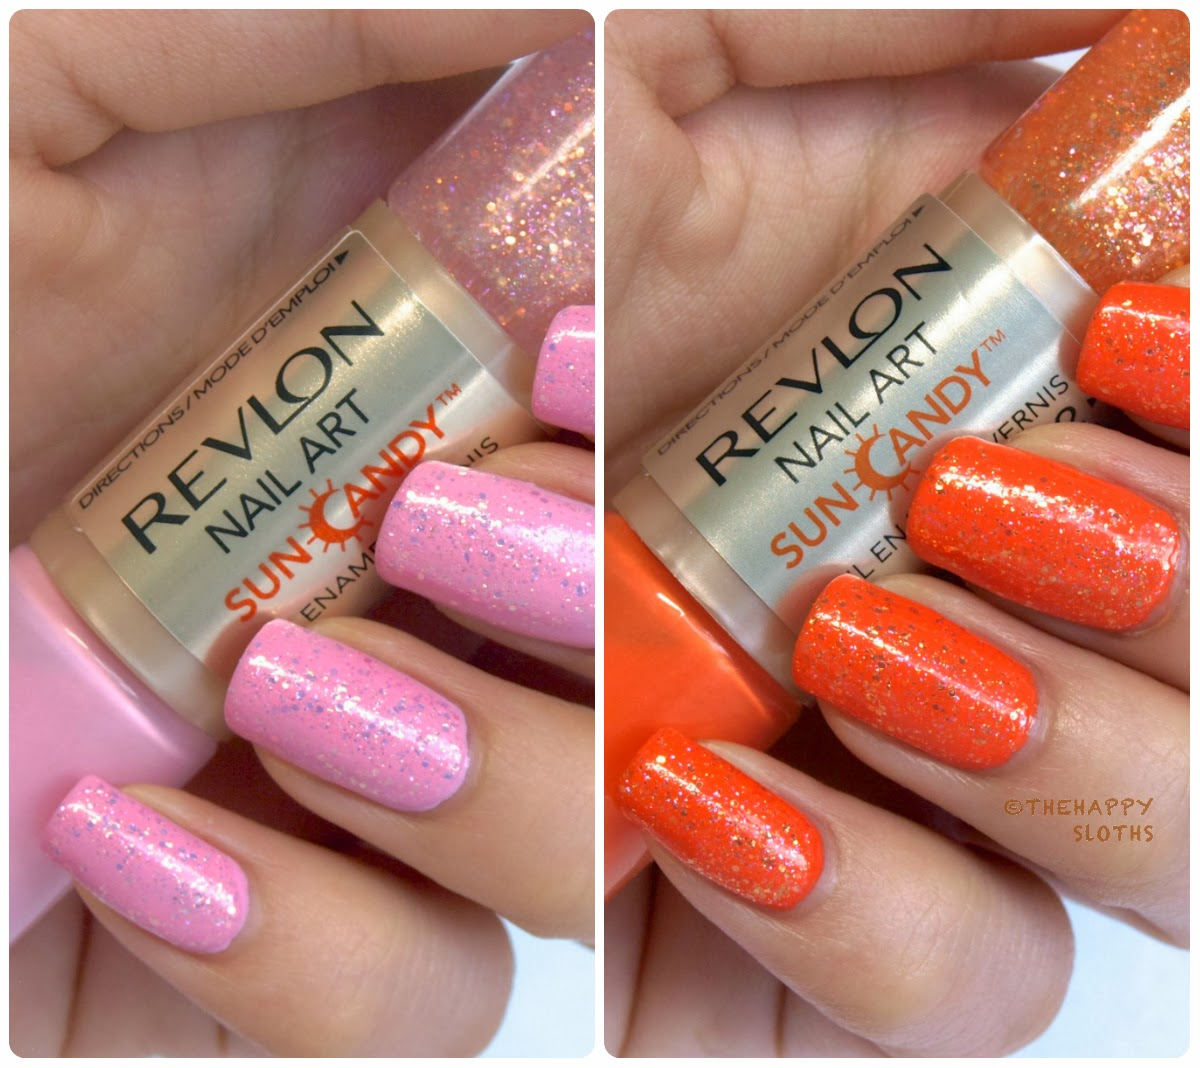 Revlon nail art sun candy nail enamel in pink dawn fiery sky hey guys ive got here two lovely colors from revlons new nail art sun candy nail enamels to swatch and review for yall the sun candy nail enamels are a prinsesfo Images